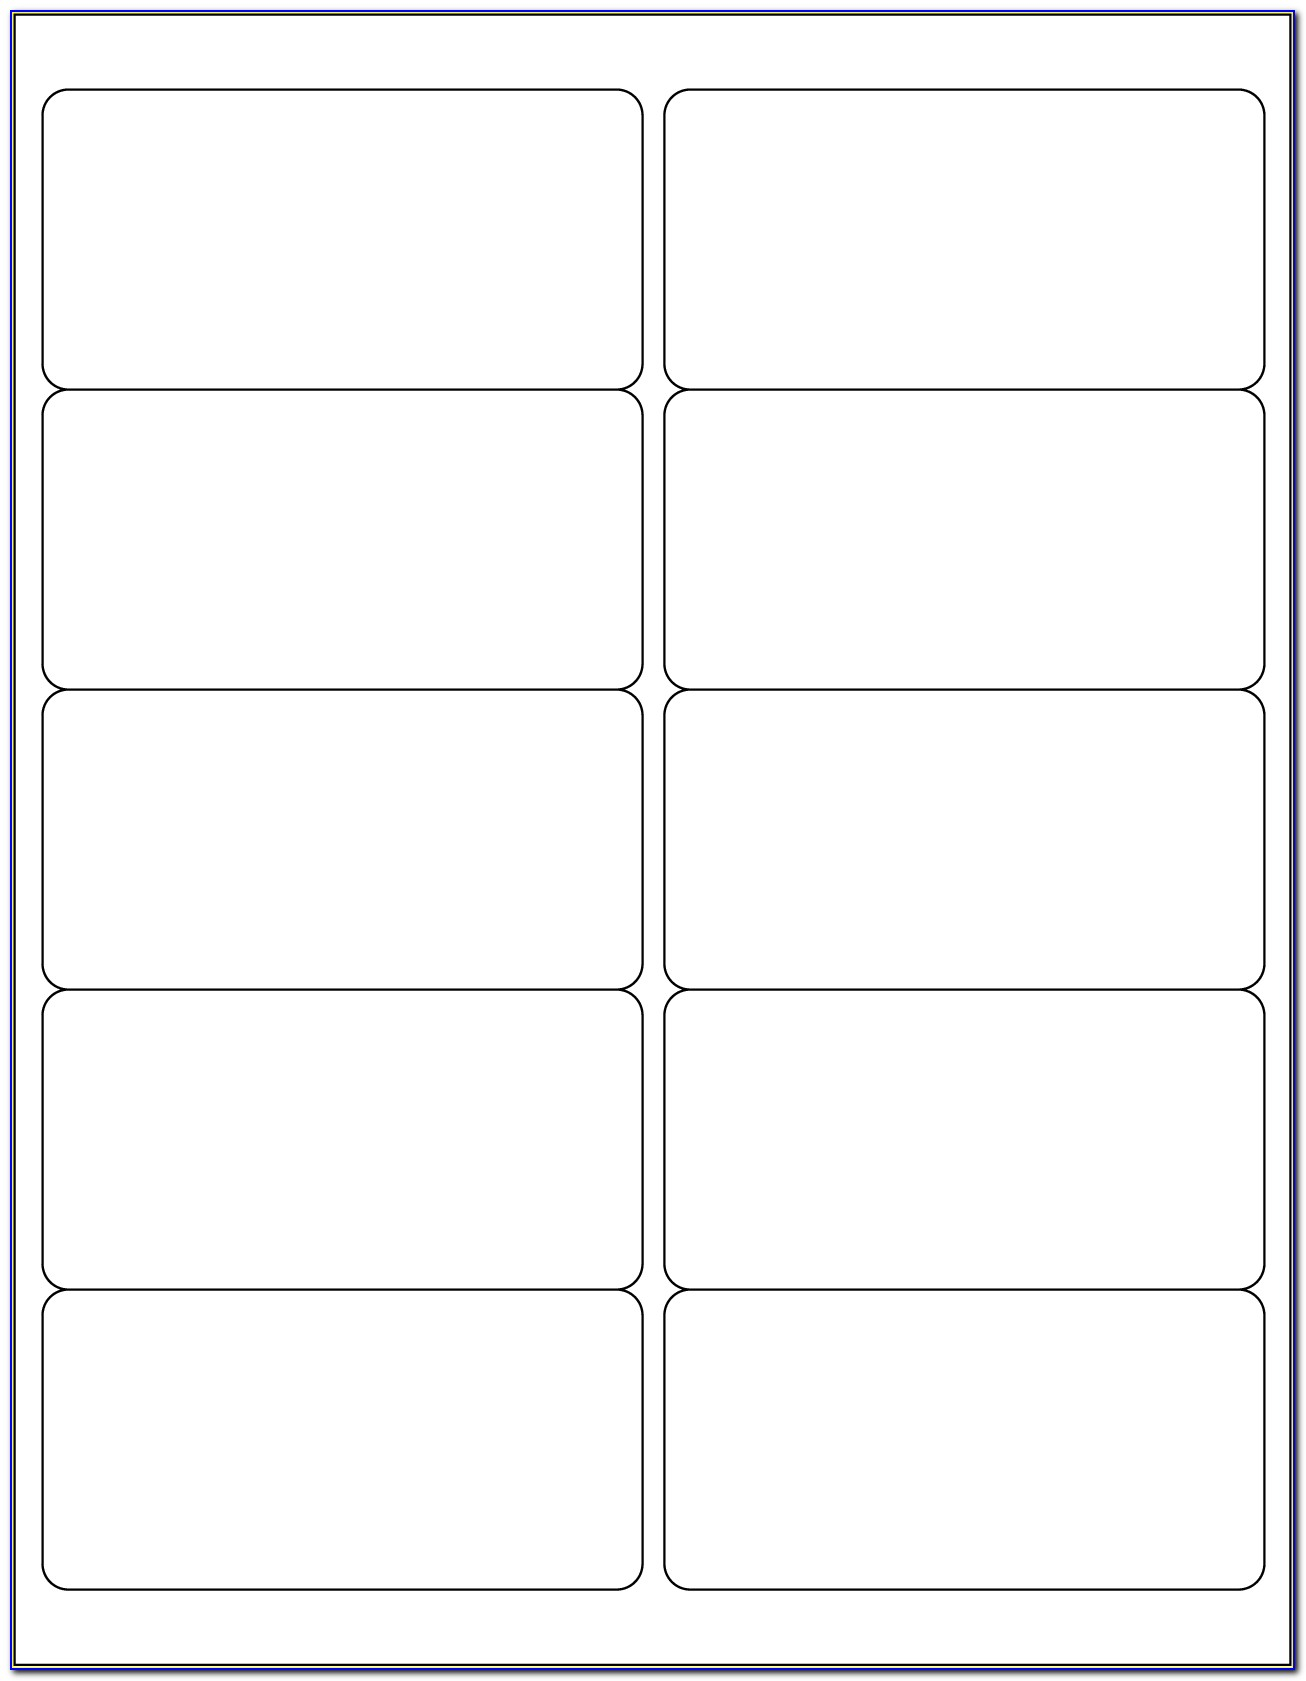 Avery Template For Labels 5164